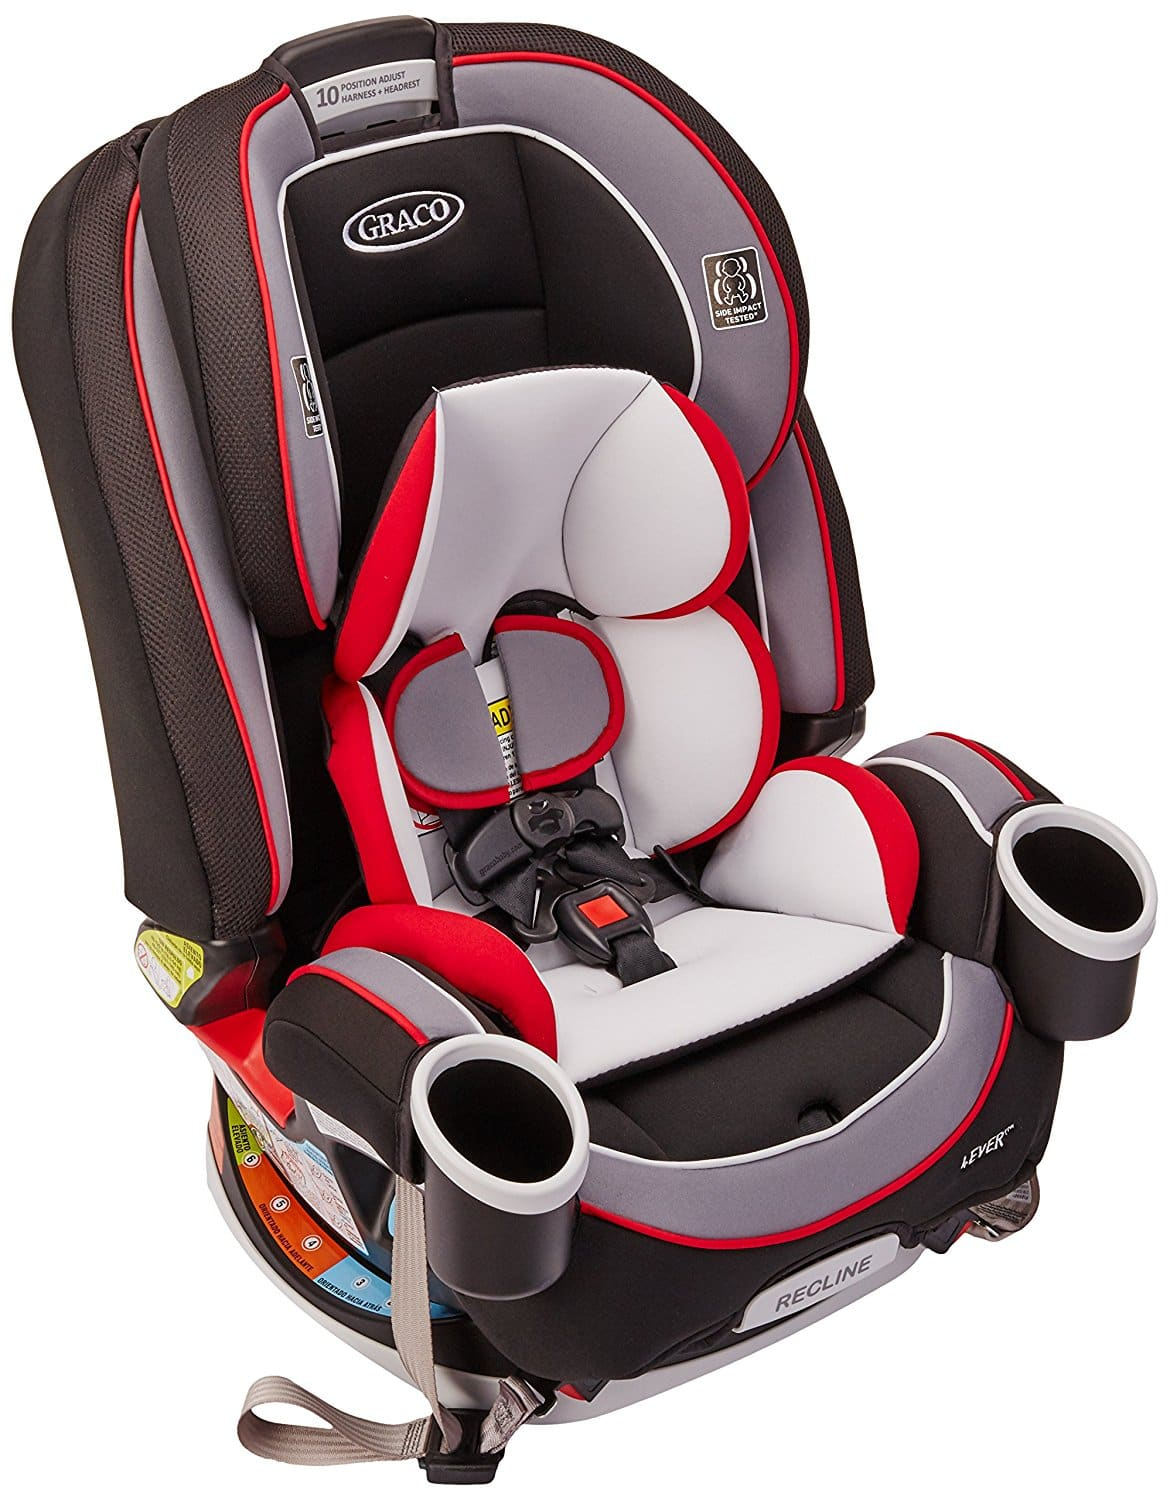 Amazon Prime Members - Graco 4ever All-in-One Convertible Car Seat, Cougar -> $199-$60 = $139+tax